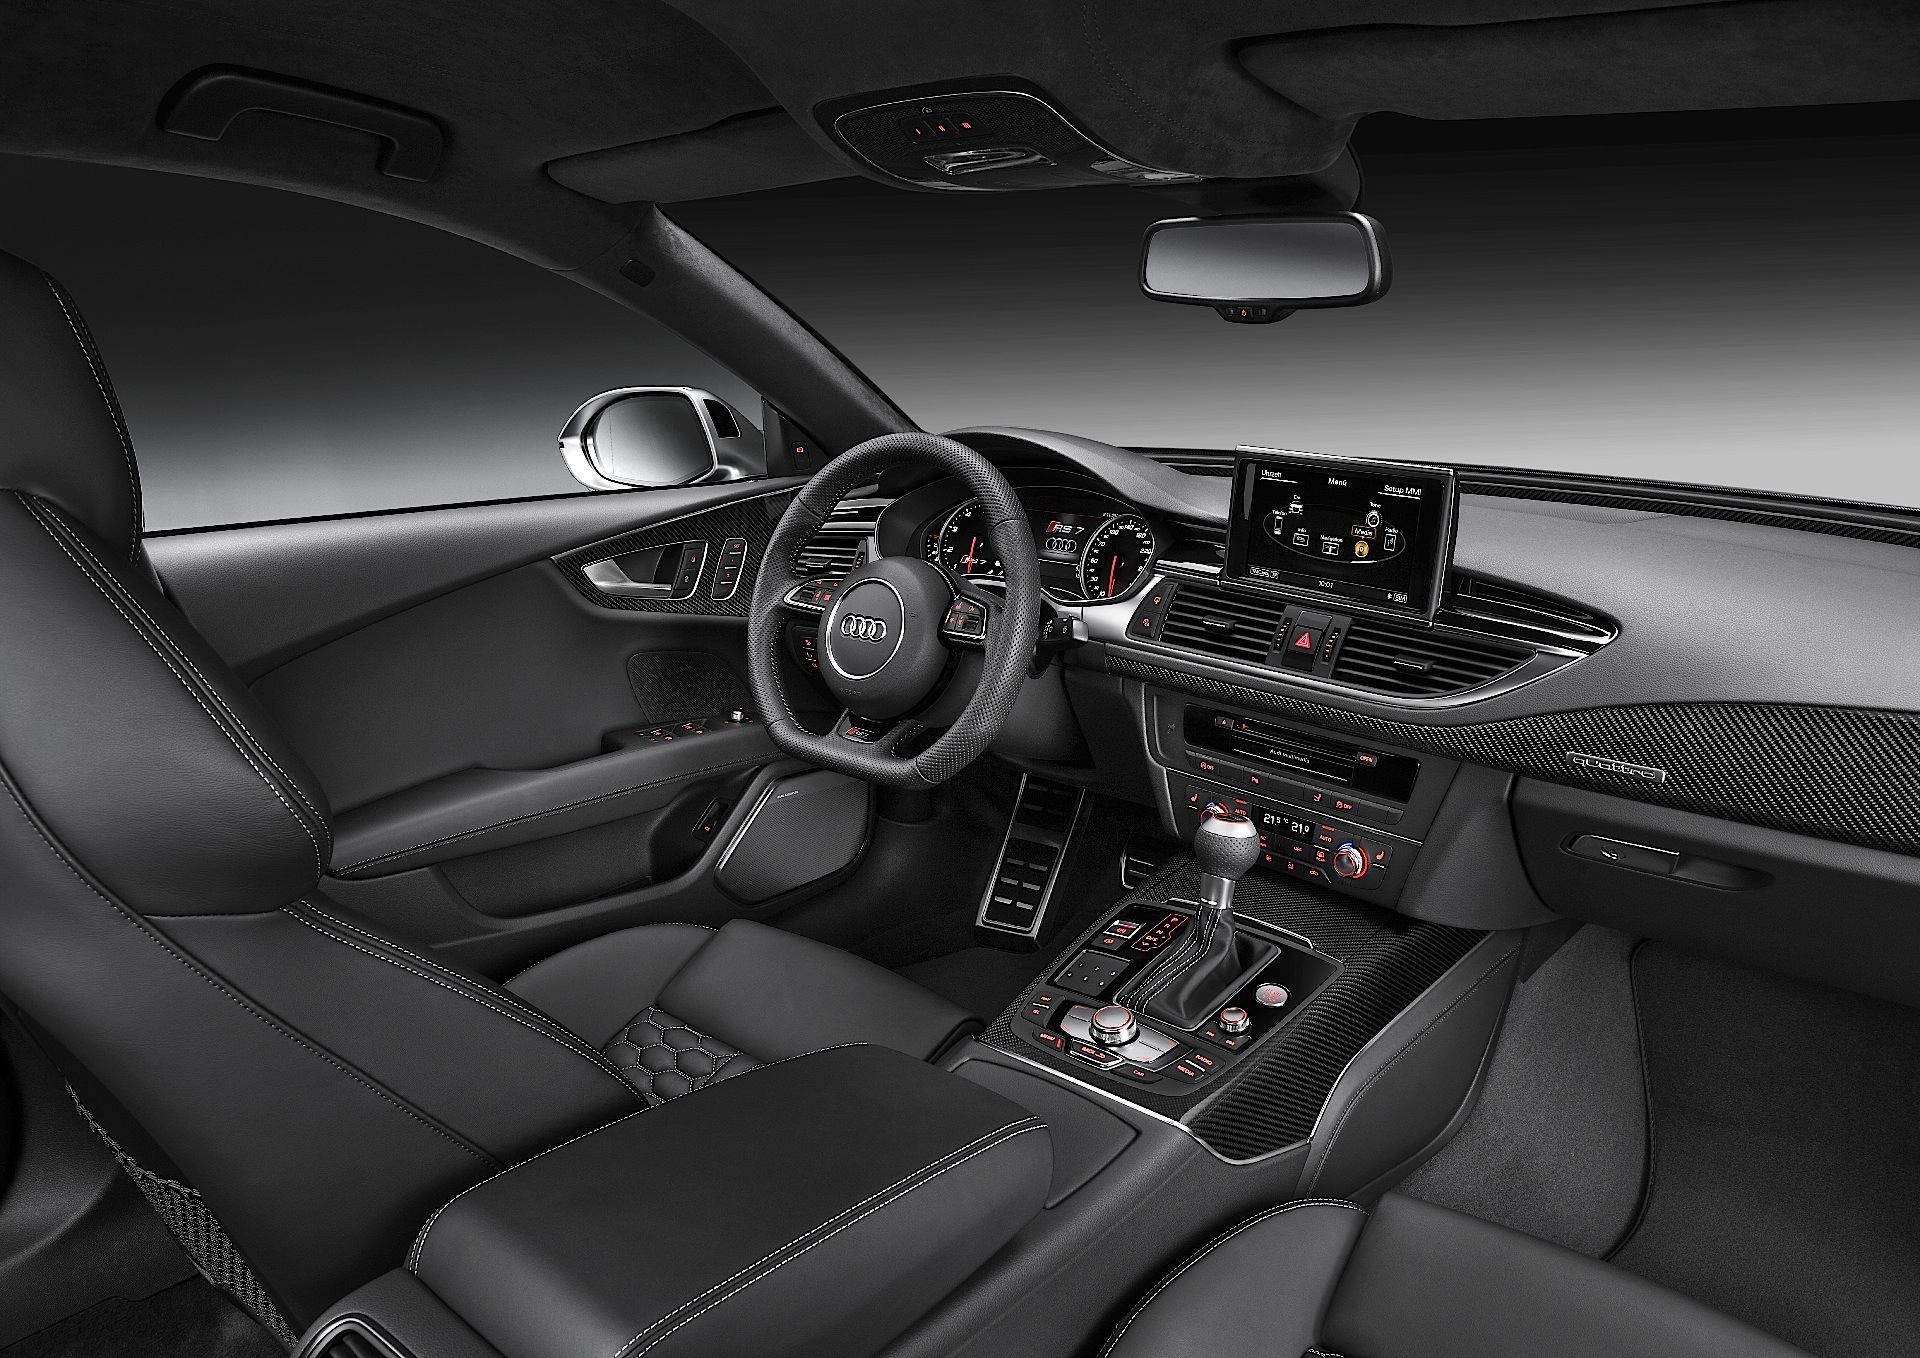 rs7 – Car Wallpapers For The Android,Iphone 6 ,Samsung S5 ,Desktop ,Mobile 4 Wallpaper